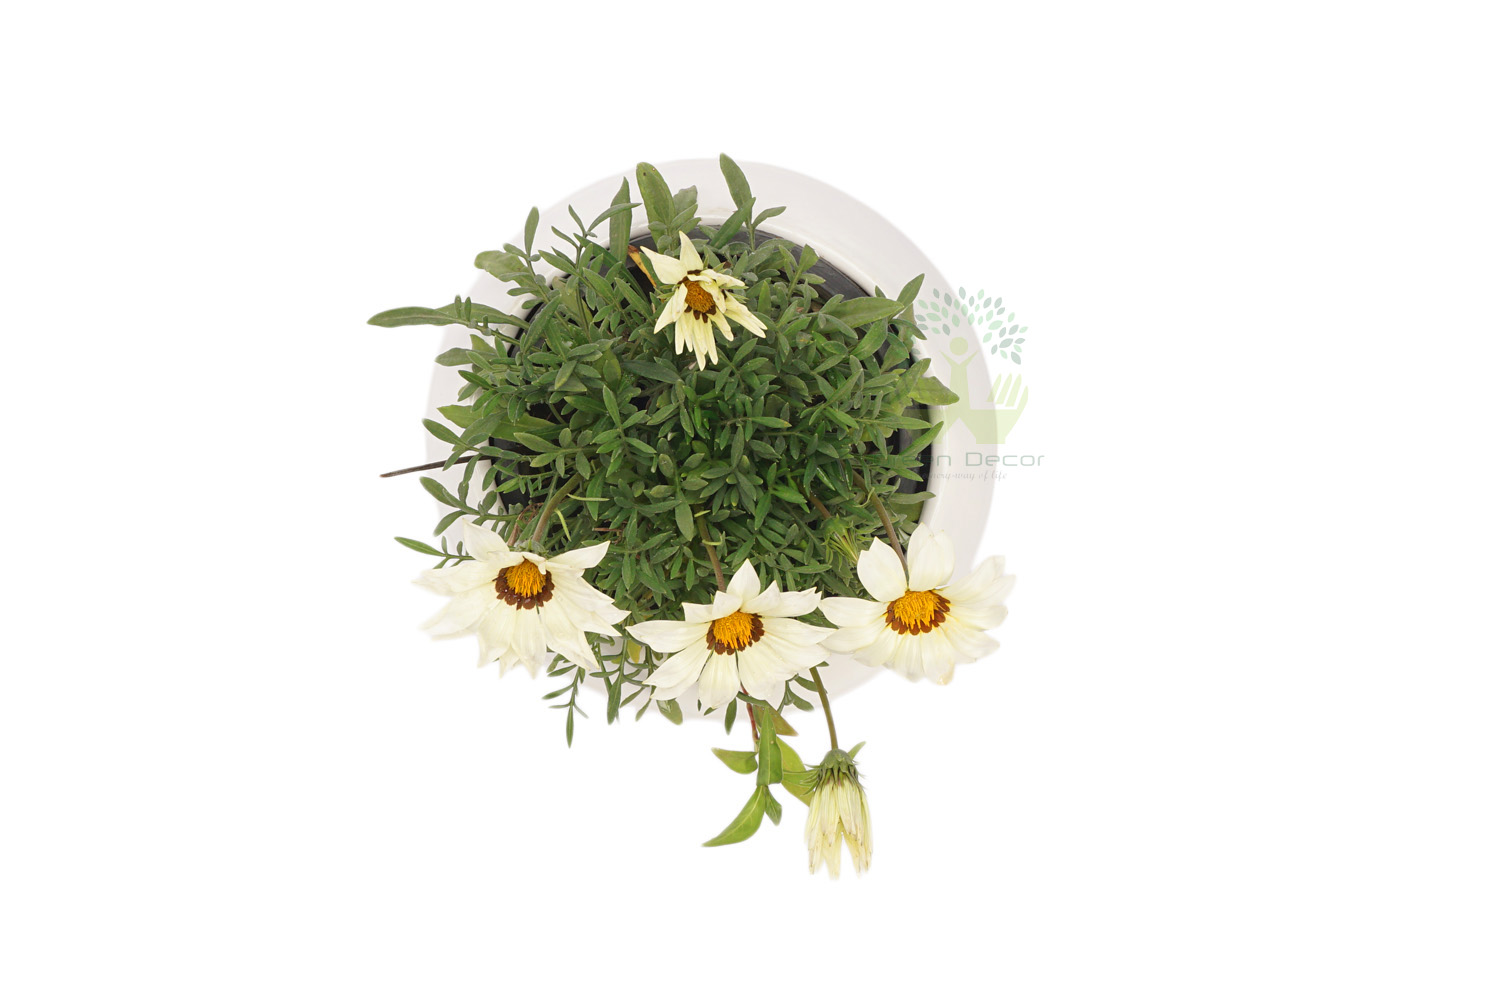 Buy Gazania Plants , White Pots and seeds in Delhi NCR by the best online nursery shop Greendecor.